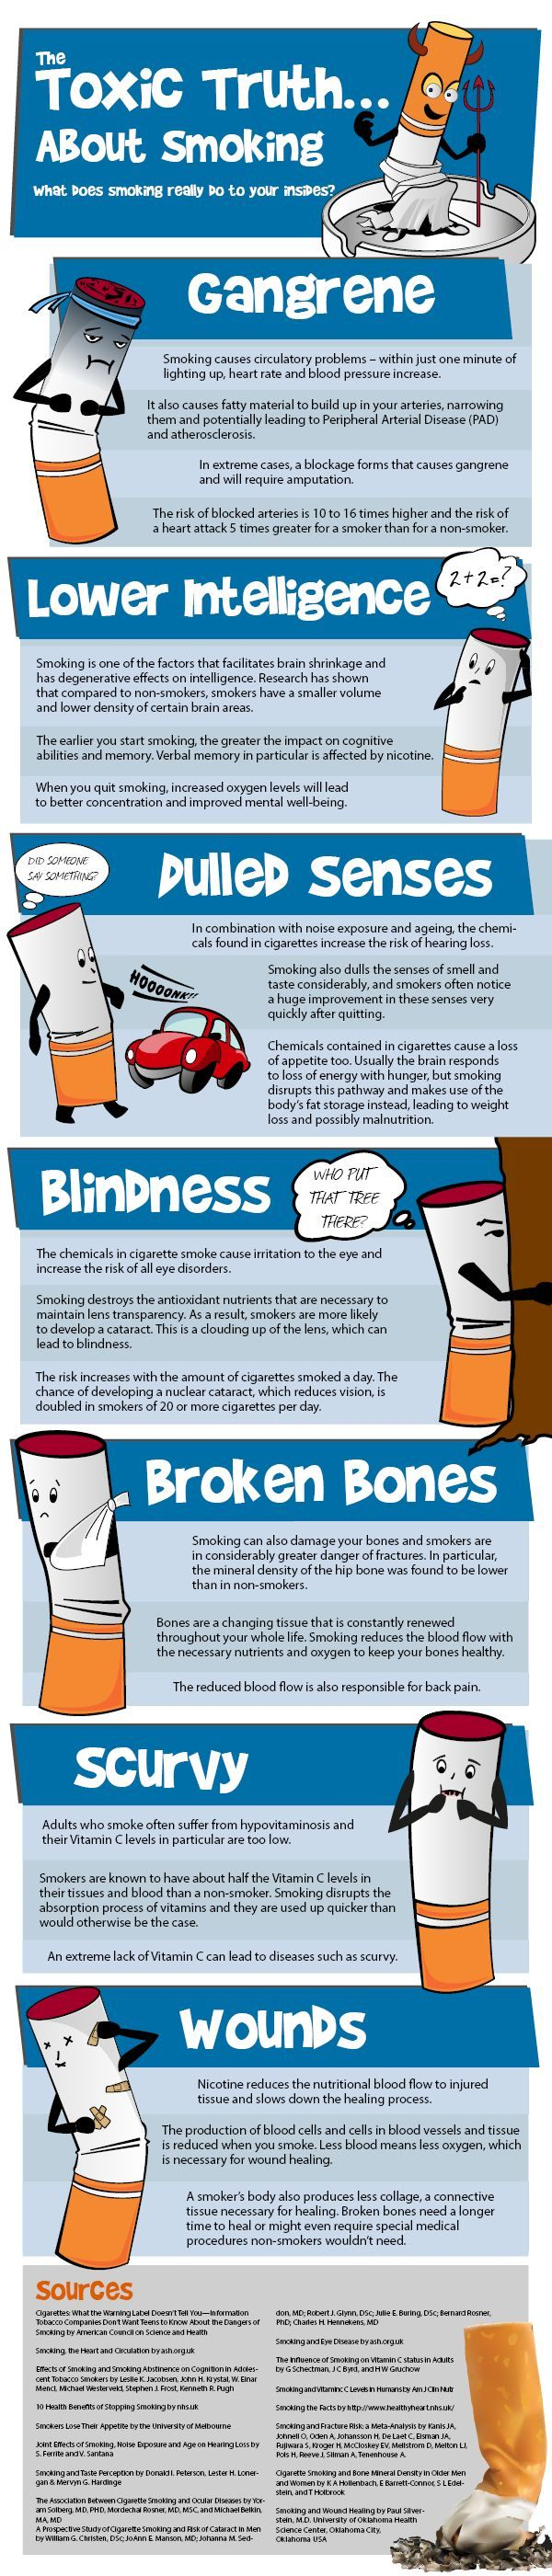 the toxic truth about smoking infographic